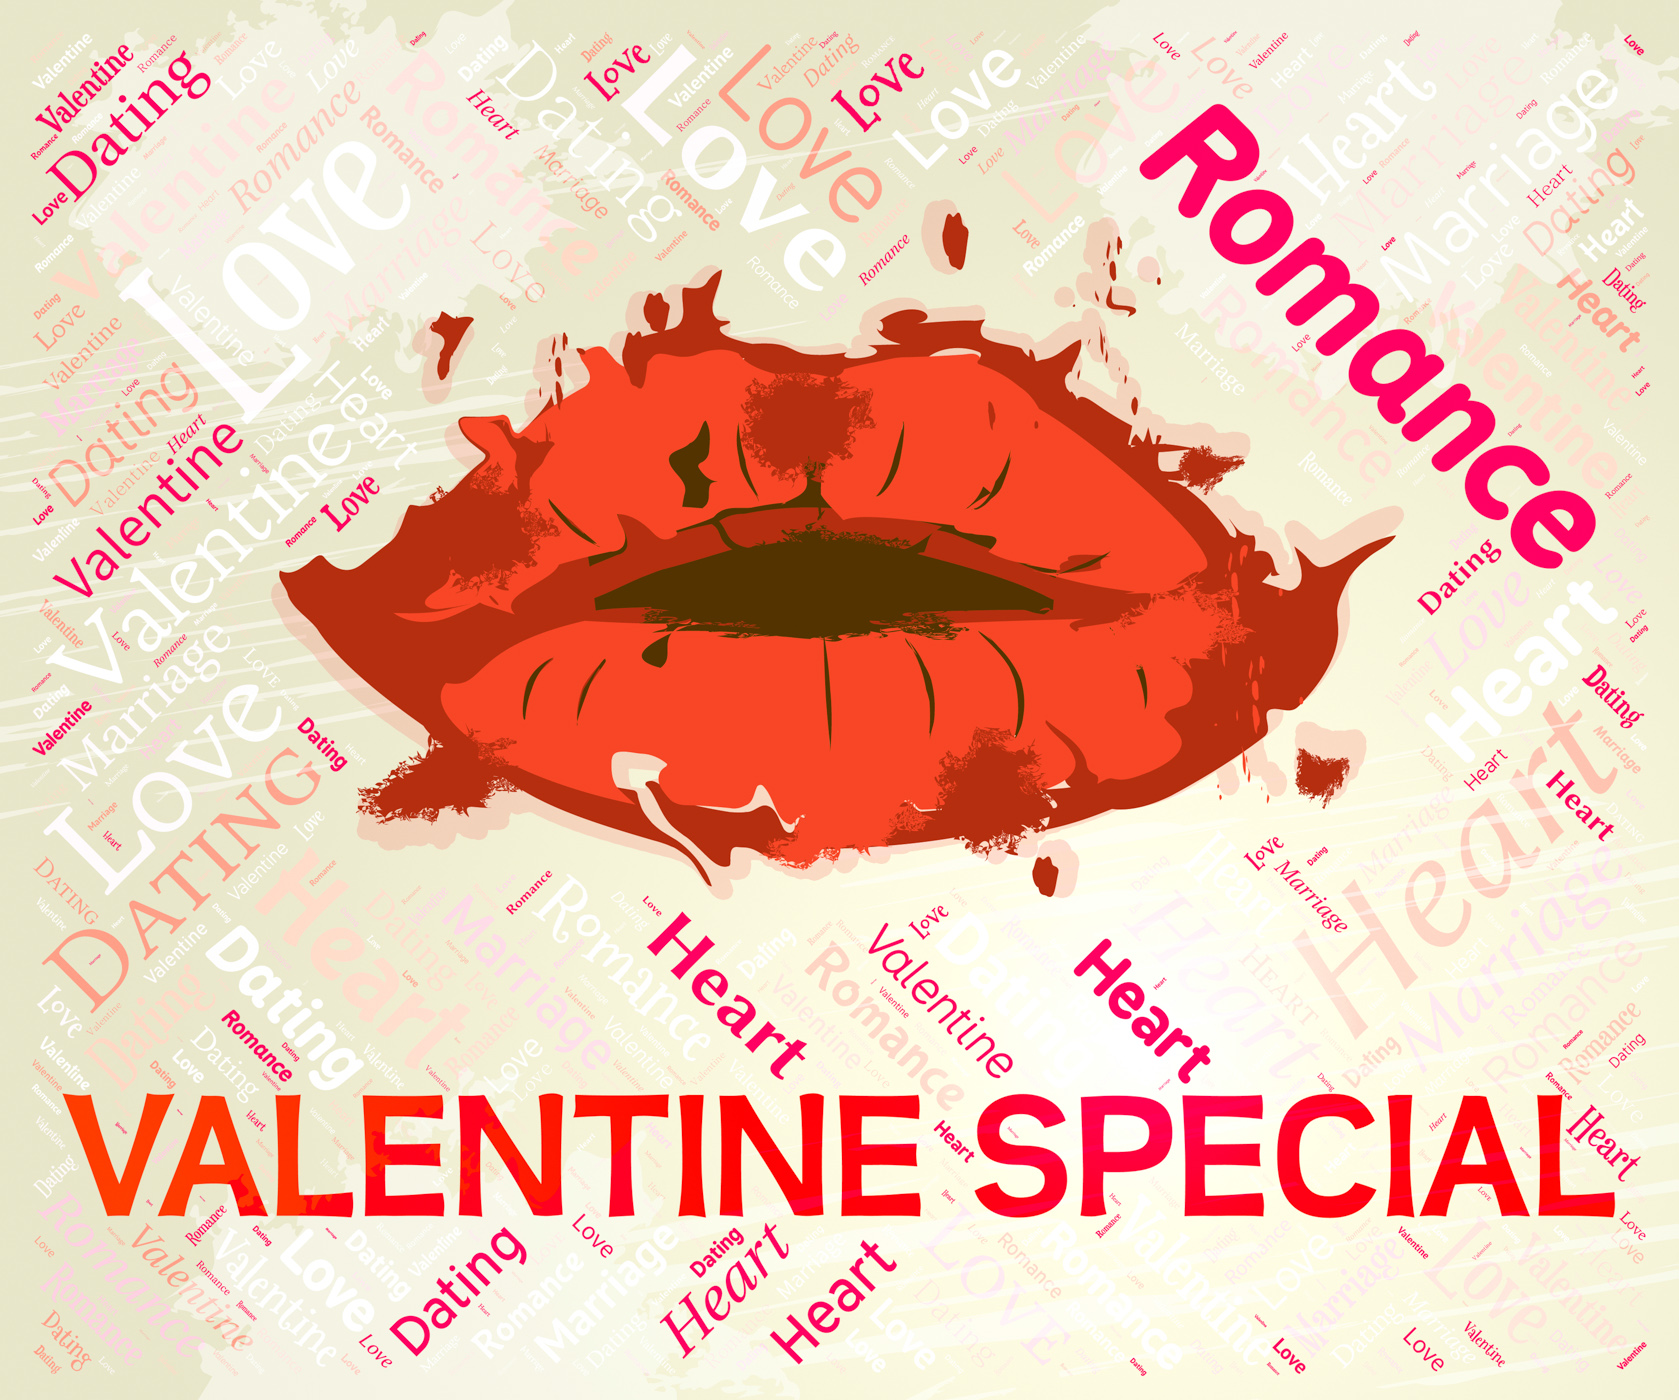 Valentine special means valentines day and bargain photo